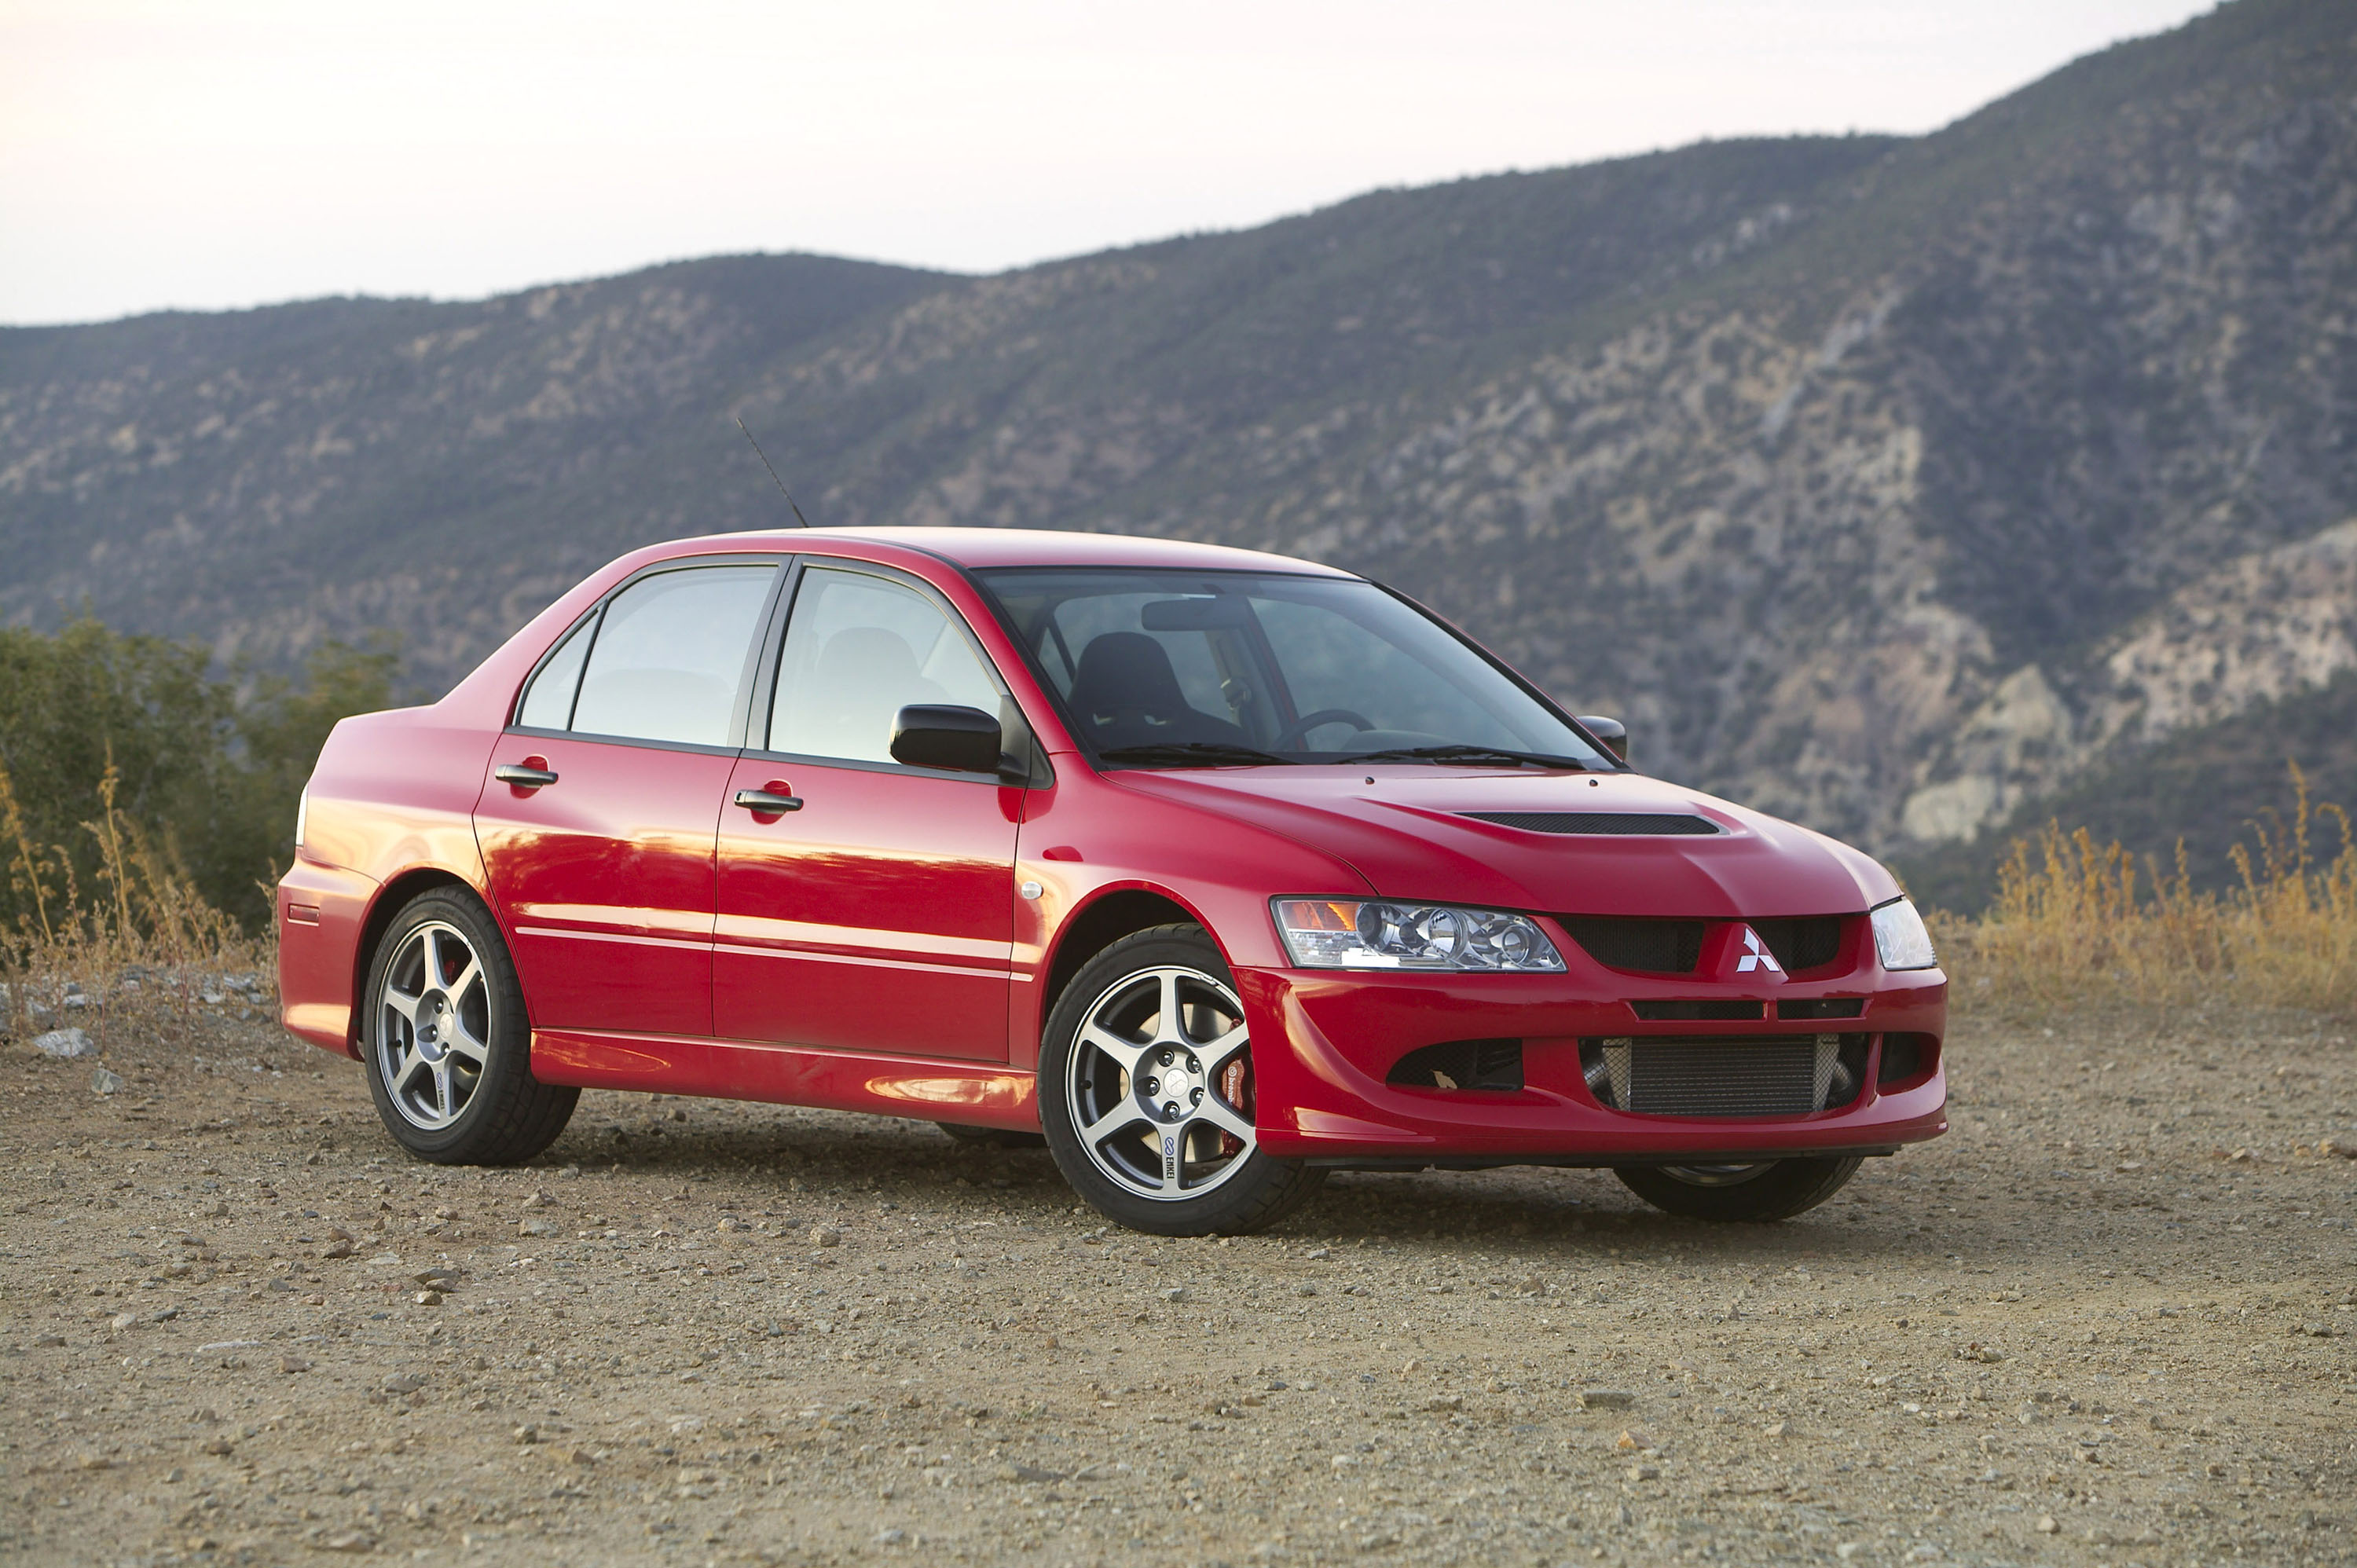 2005 mitsubishi lancer evolution mr hd pictures. Black Bedroom Furniture Sets. Home Design Ideas